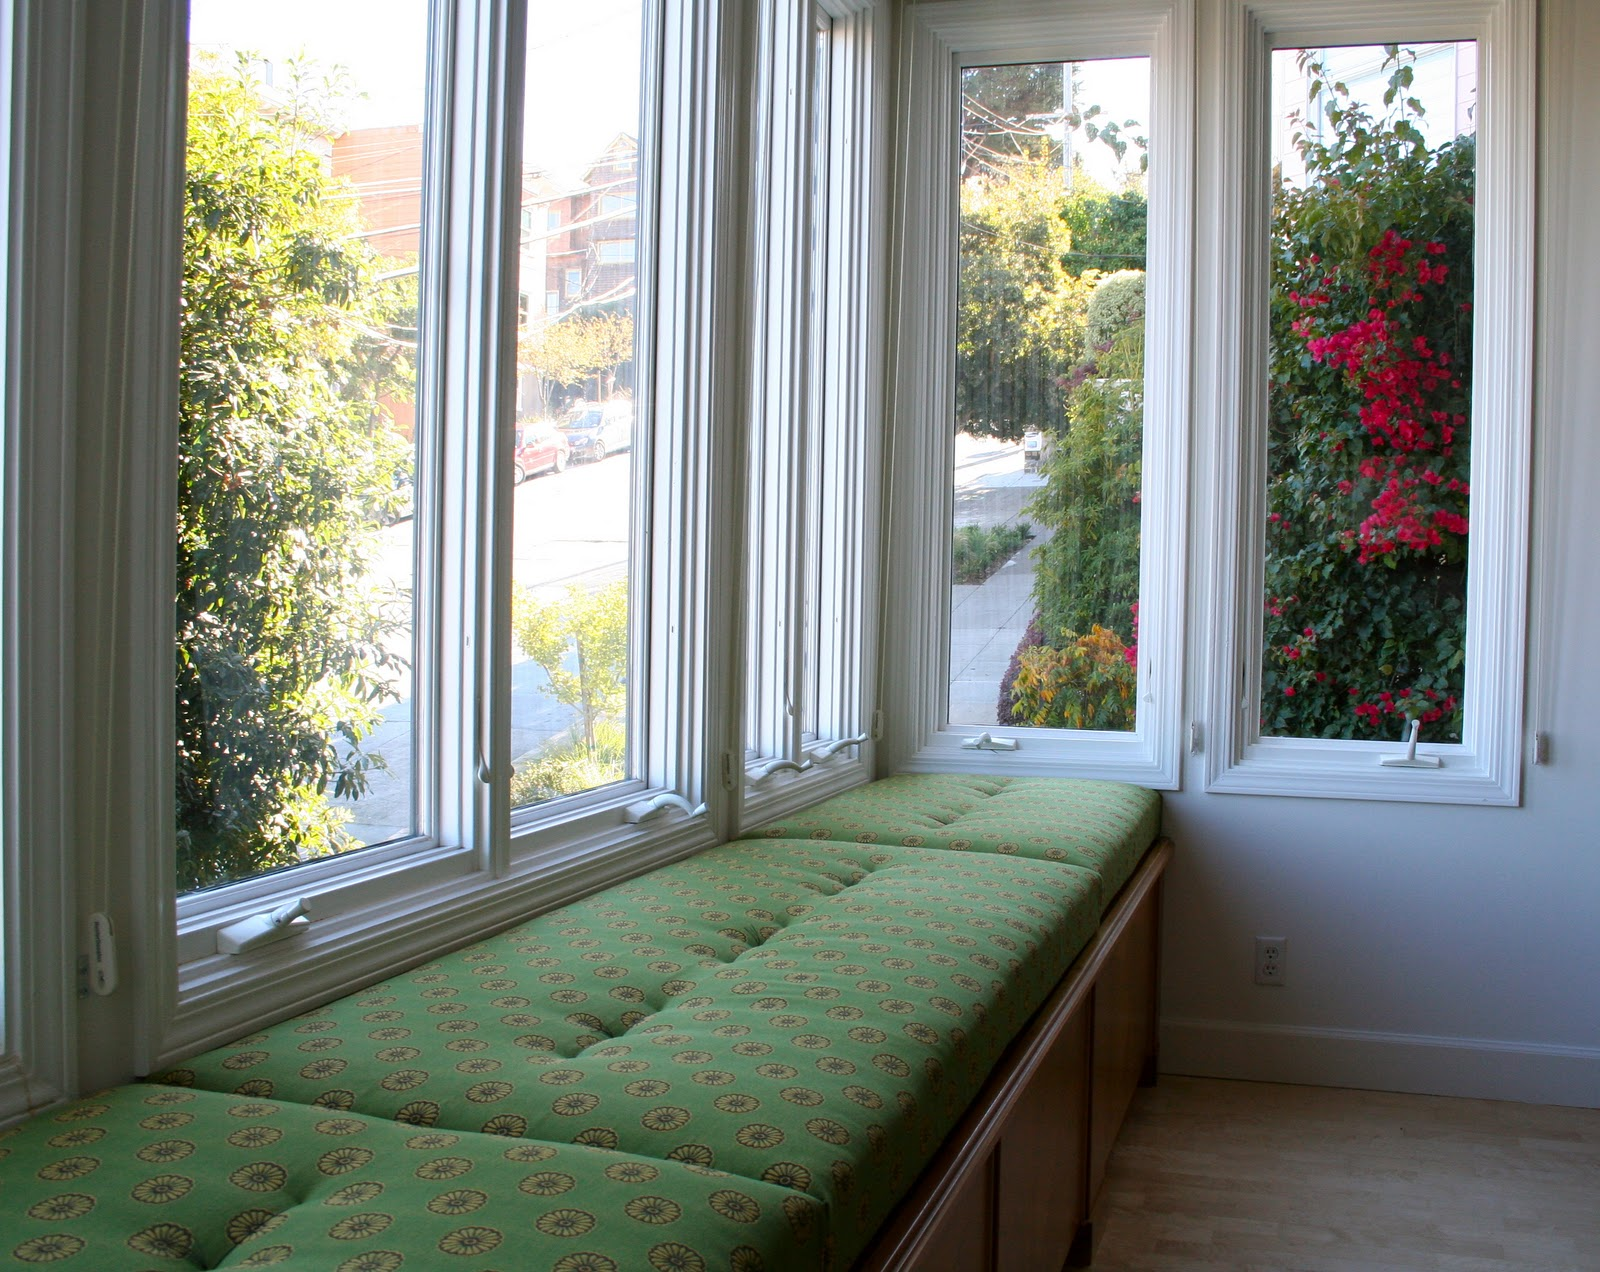 Nohr interior design window seat custom cushions Custom design windows